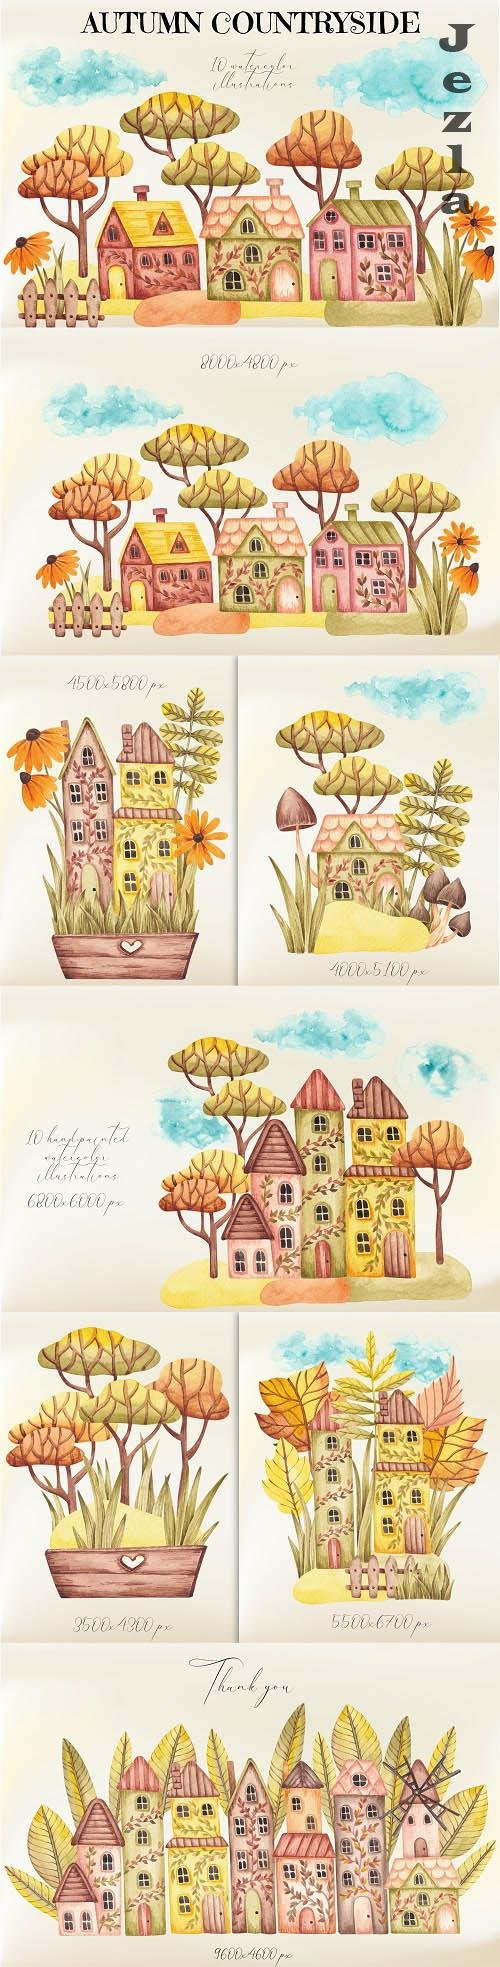 Watercolor Illustrations Autumn Countryside - 1506889